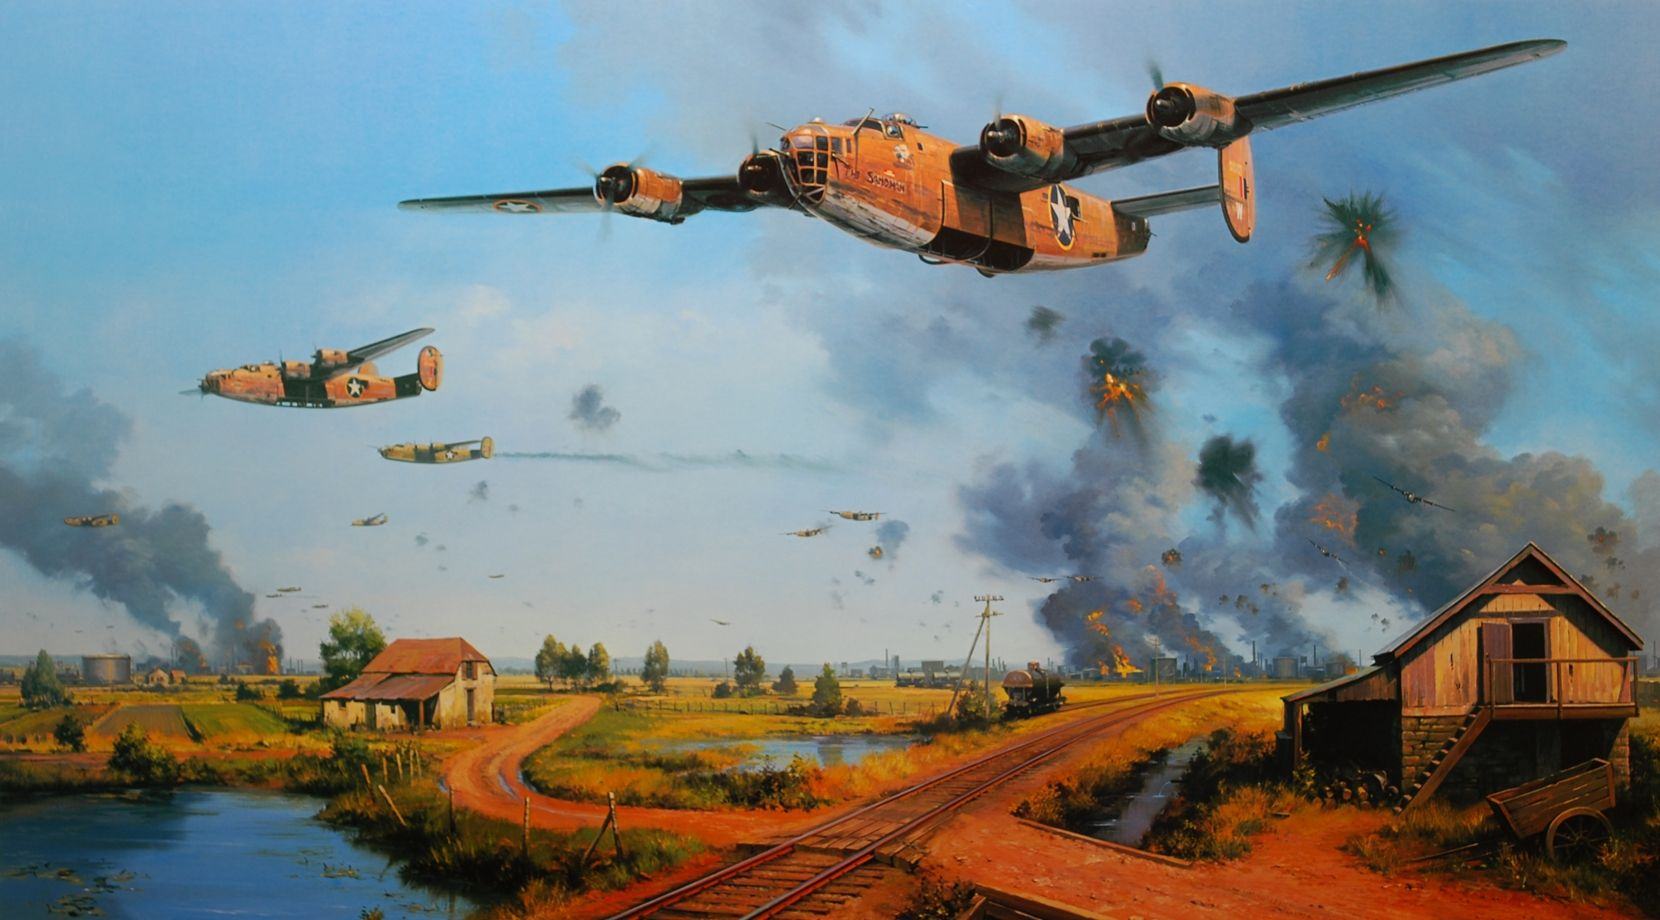 Painting of B24 Consolidated Liberator bombers on a